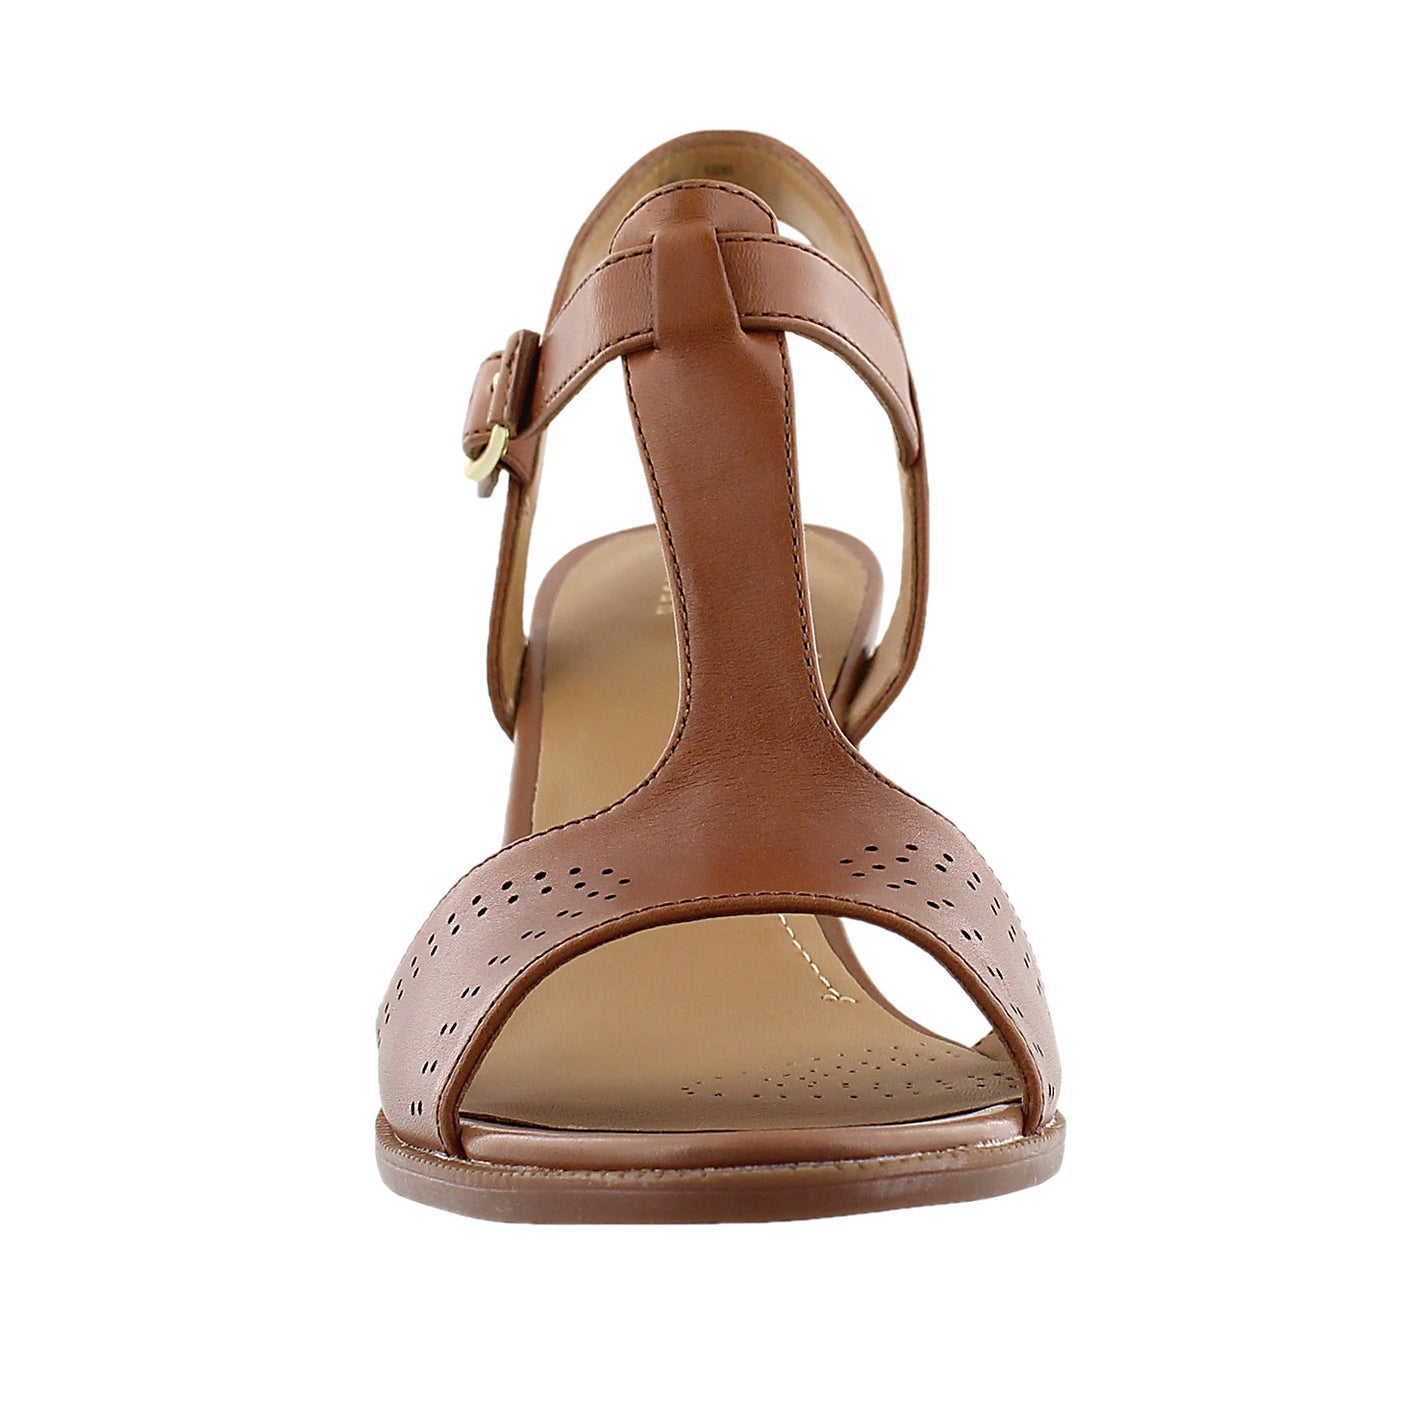 Lds Ciera Glass brn t-strap dress sandal